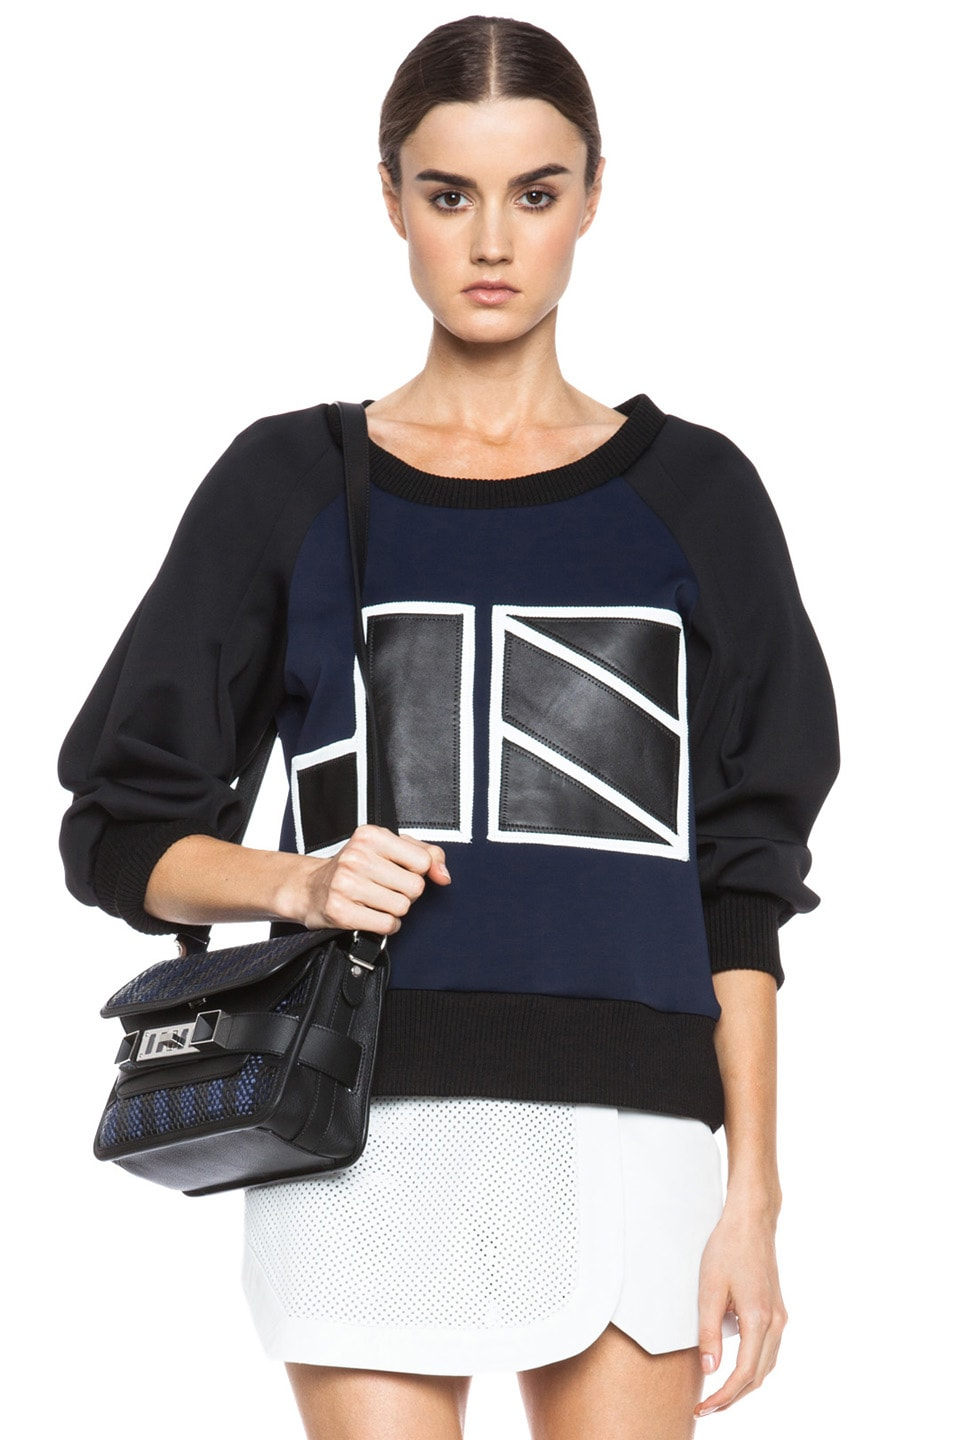 Image 1 of JONATHAN SIMKHAI JS Neoprene Sweatshirt in Black & Navy